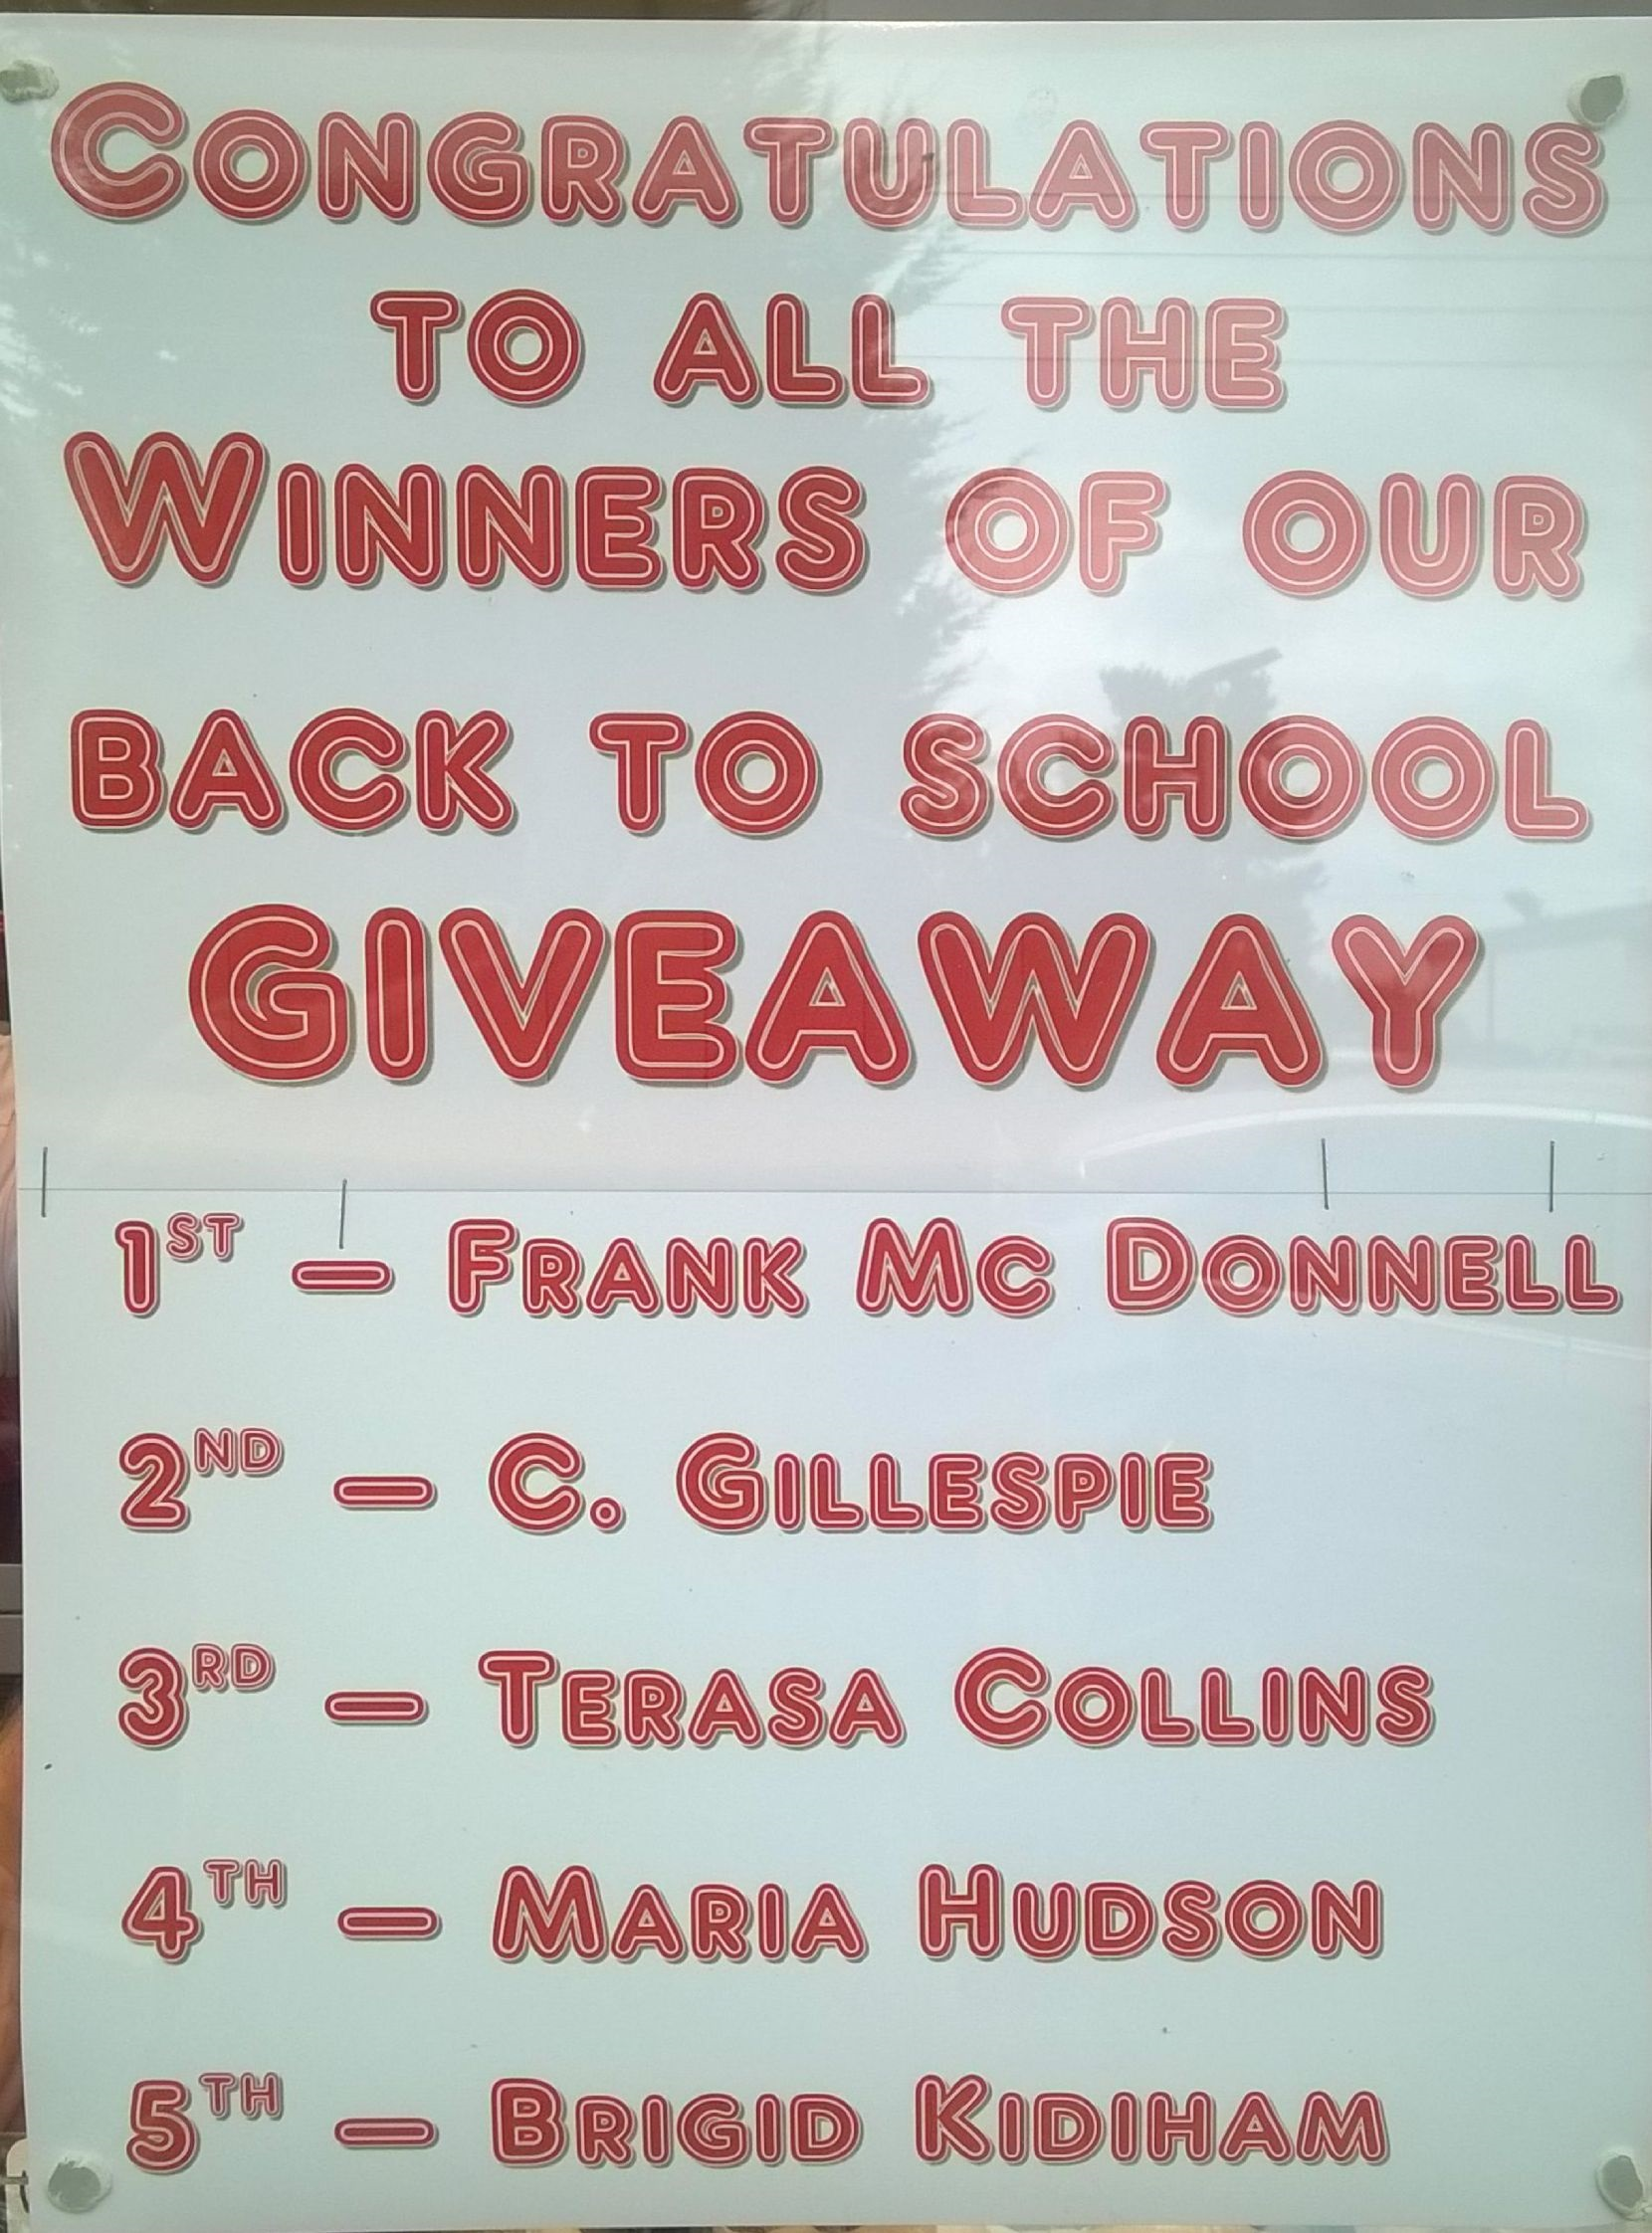 Free Draw results Winners, 1st- Frank McDonnell, 2nd- C. Gillespie, 3rd- Teresa Collins, 4th- Maria Hudson, 5th- Brigid Kidiham